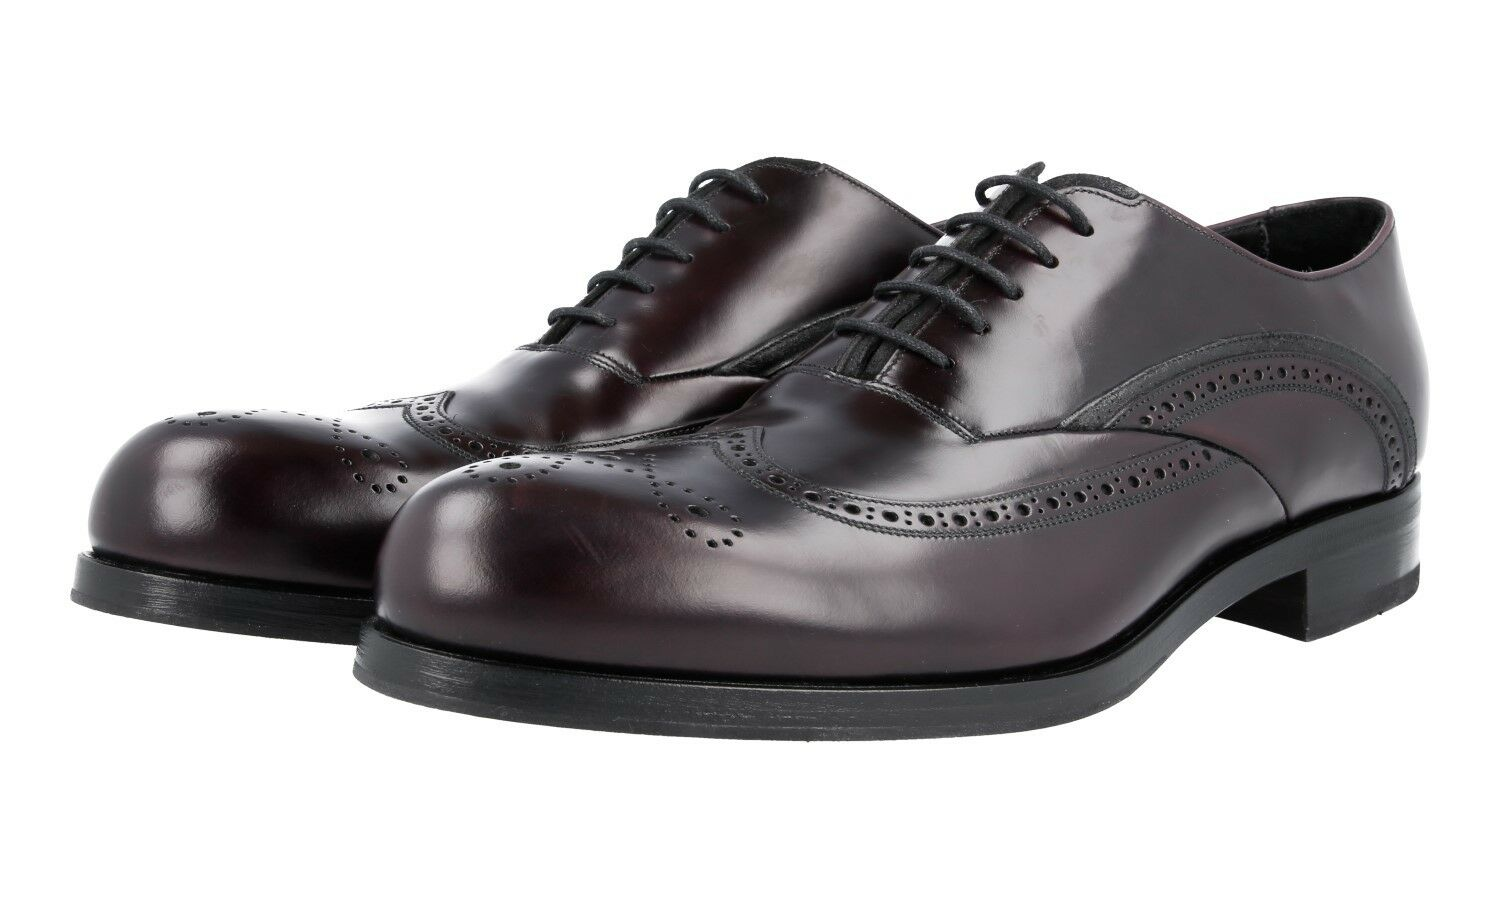 Luxury Prada   ALL'INGLESE OXFORD CALATA 2EE201 CORDOVAN NUOVE 8,5 42,5 43